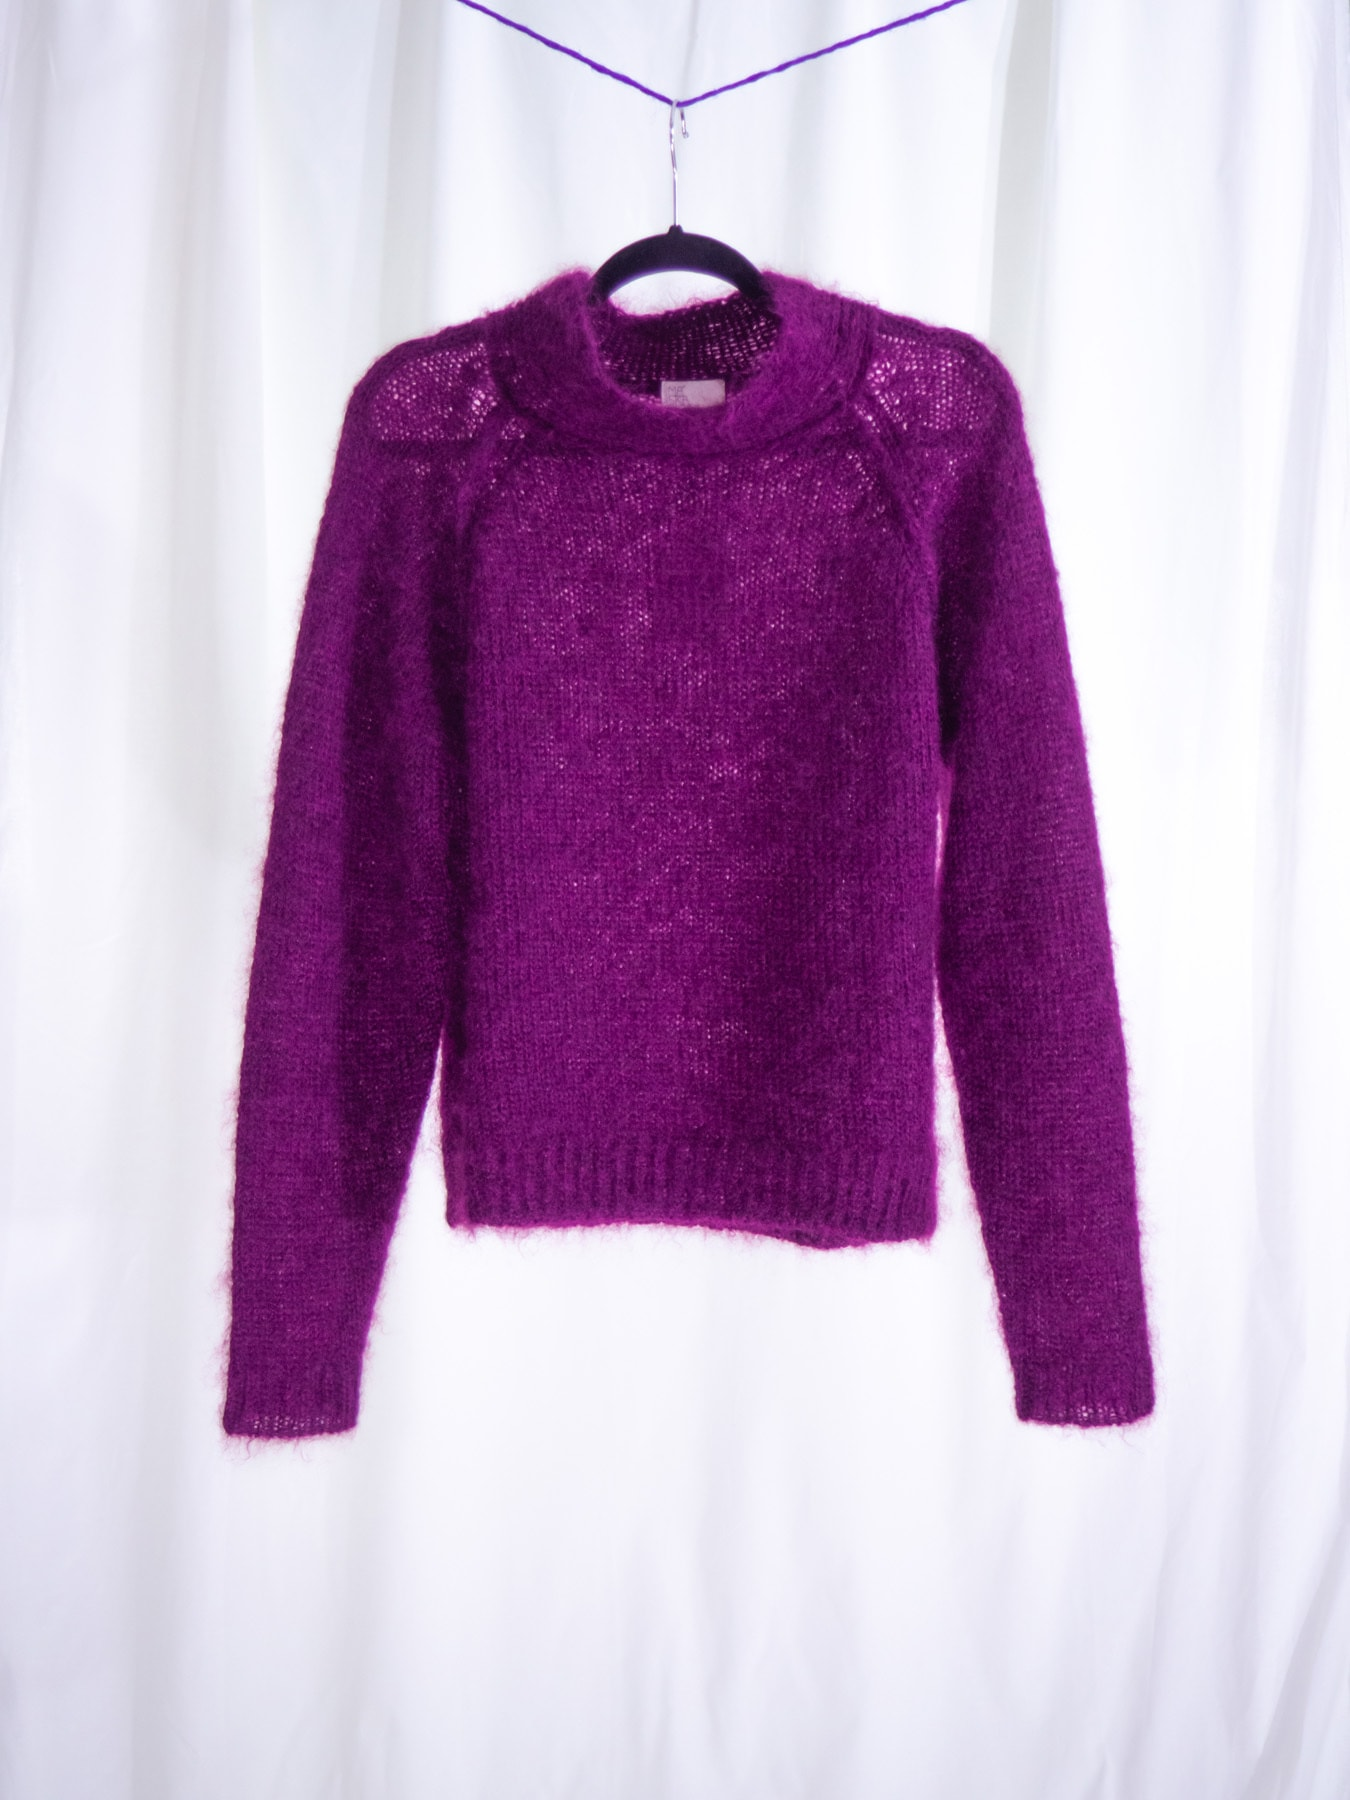 Rossi sweater